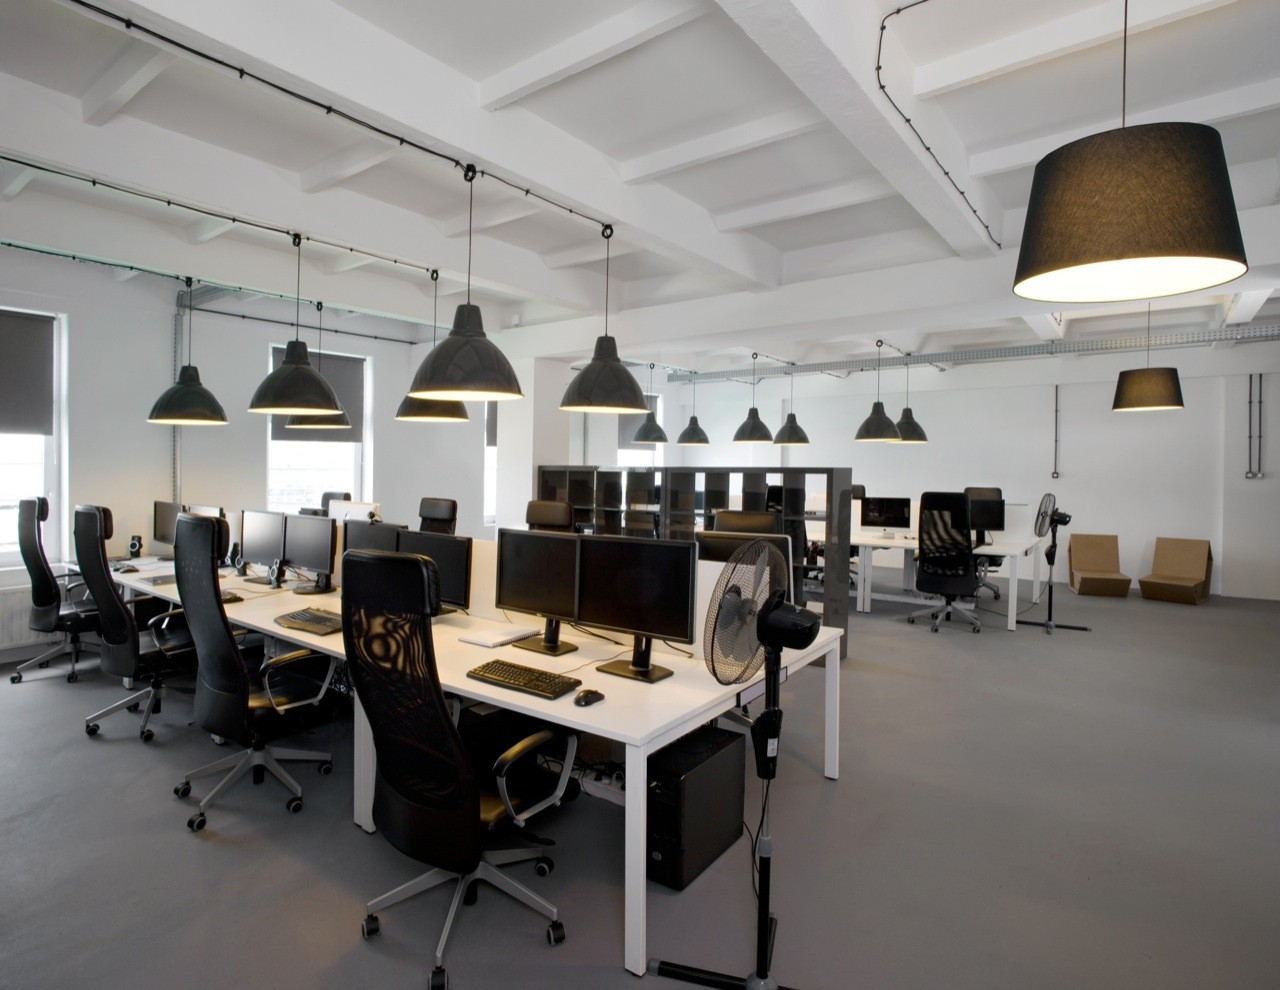 Gallery of pride and glory office morpho studio 2 for Bbdo office design 9